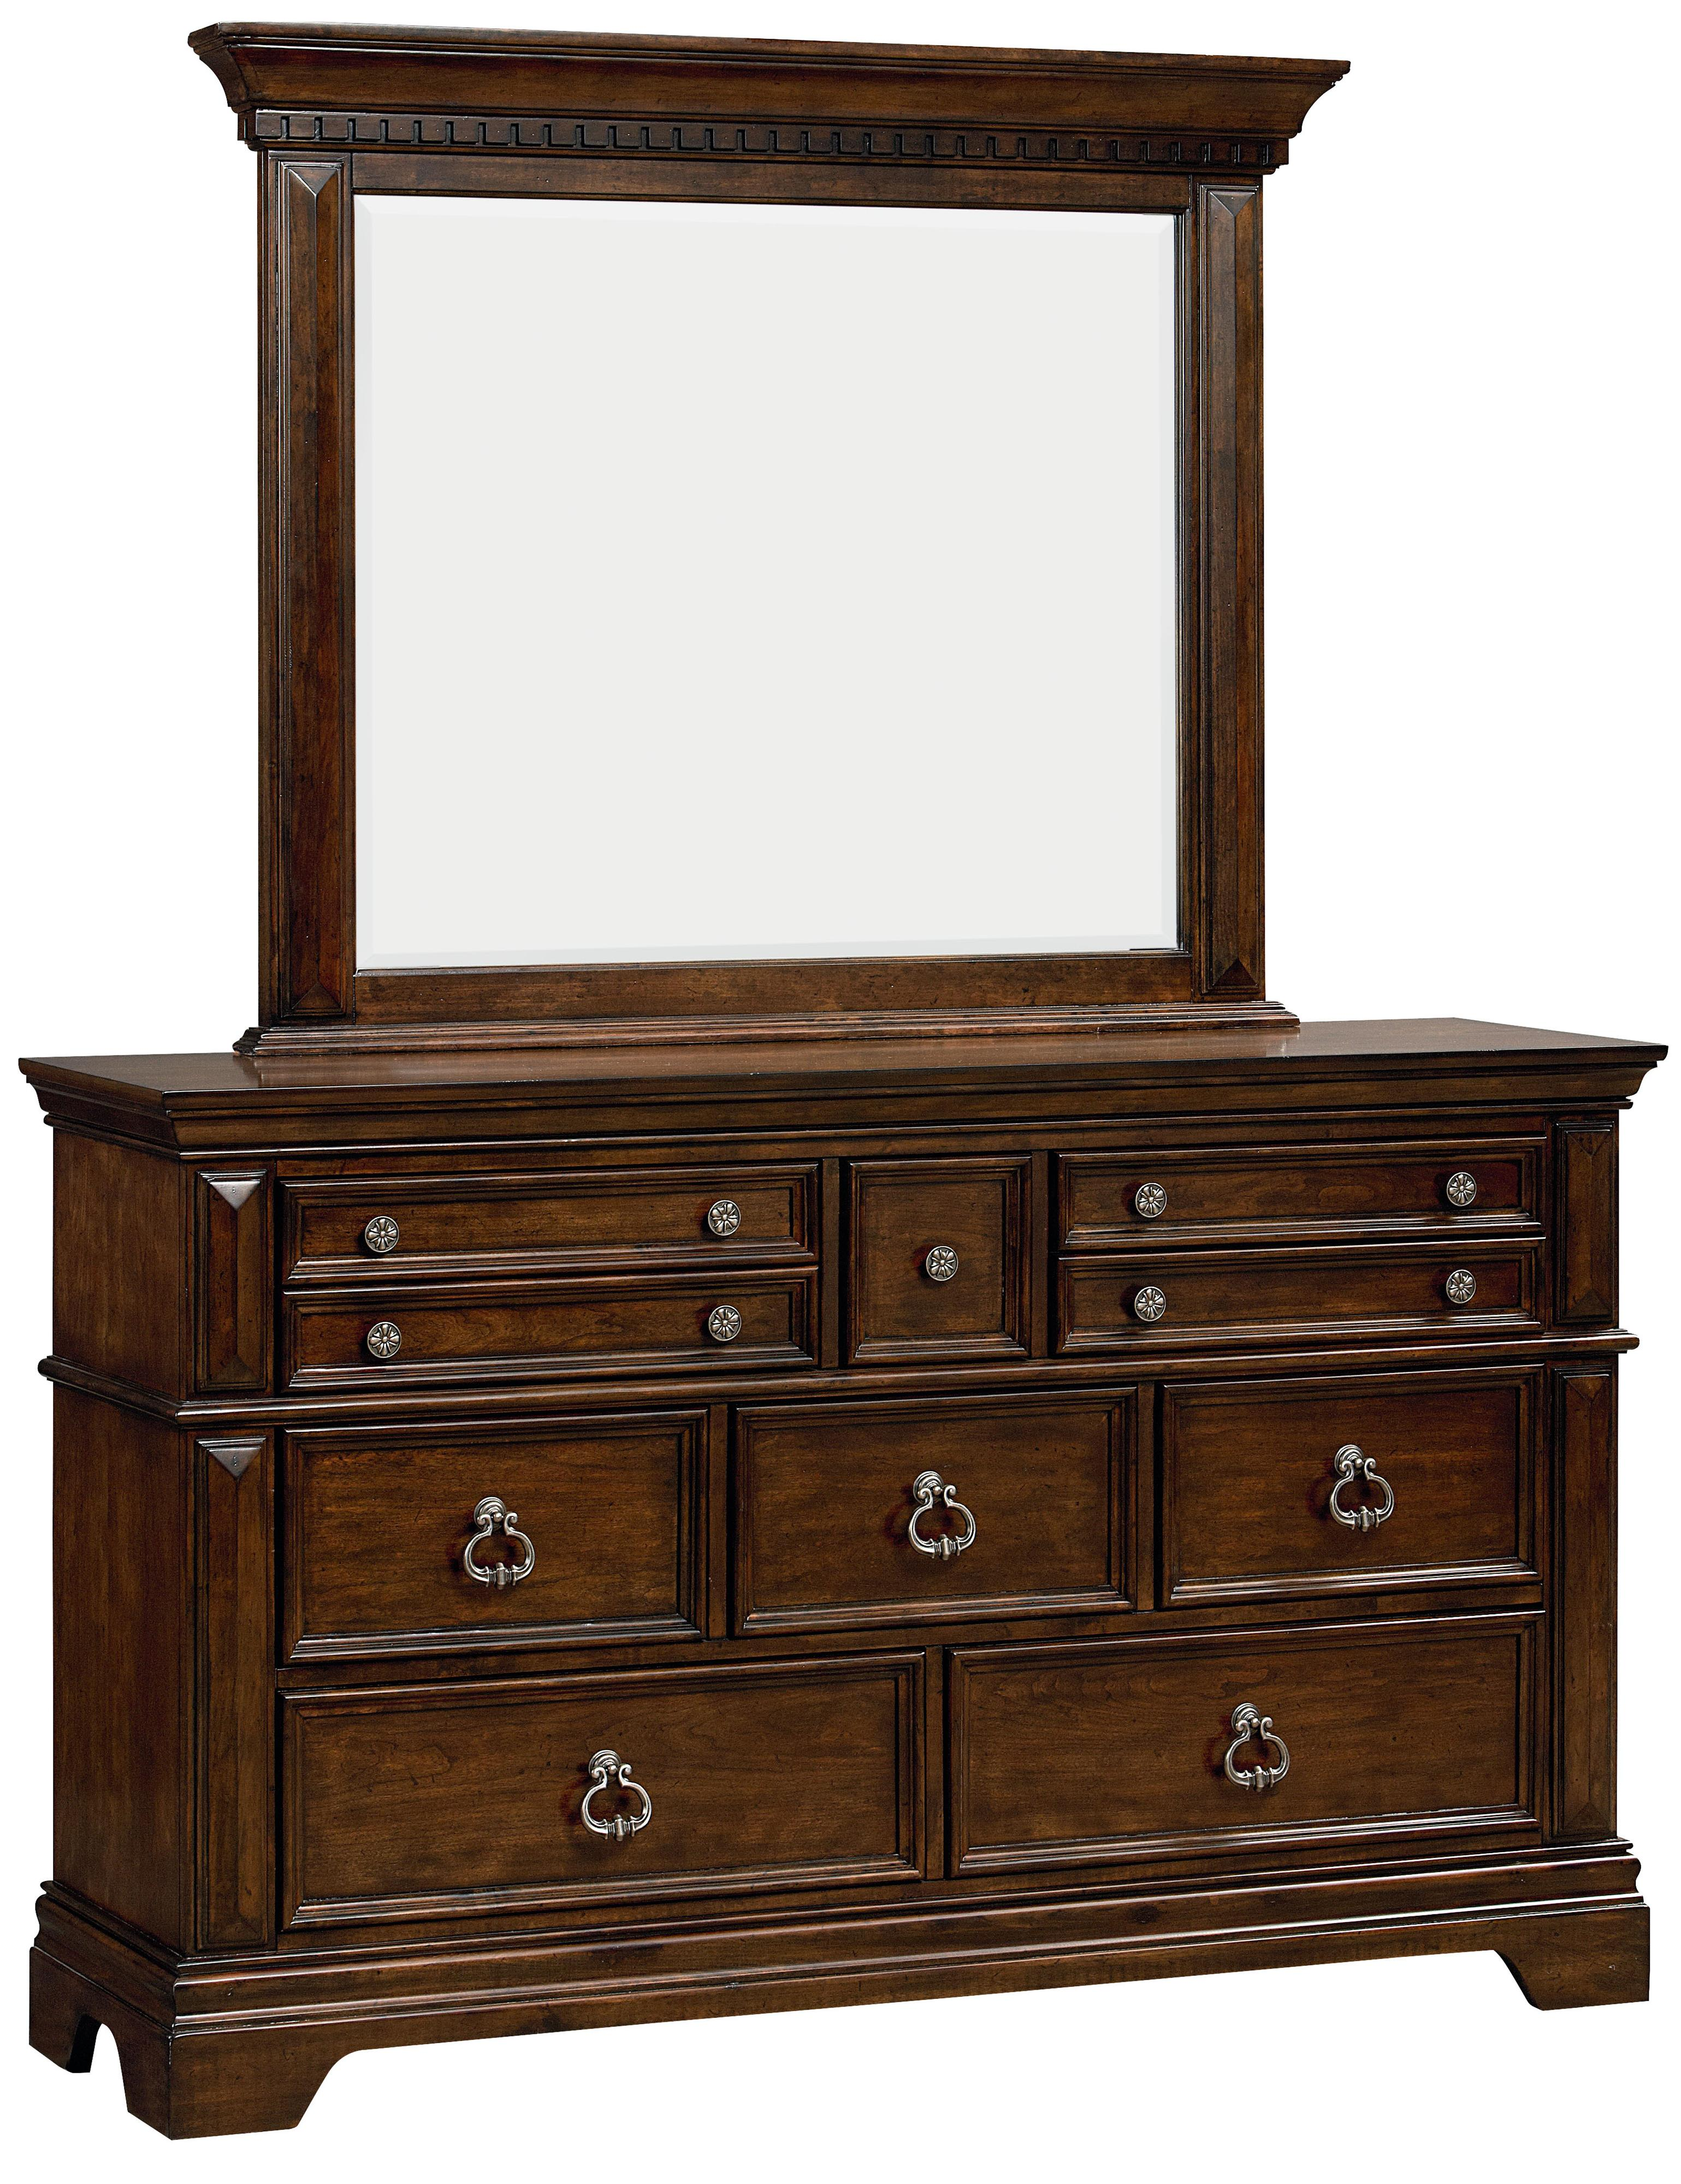 Standard Furniture Charleston Dresser and Mirror Combination - Item Number: 96009+96008